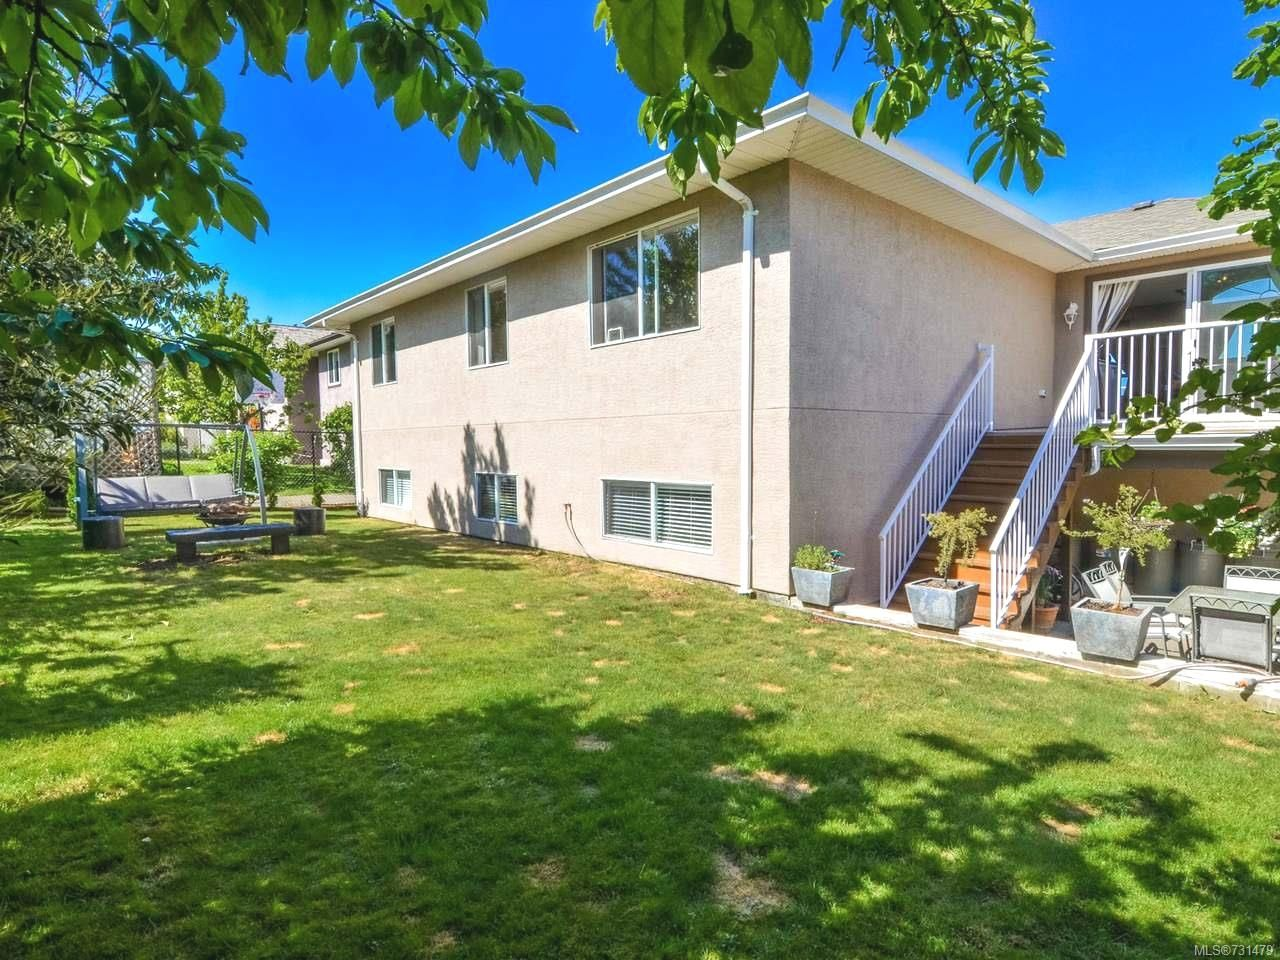 Photo 58: Photos: 753 Bowen Dr in CAMPBELL RIVER: CR Willow Point House for sale (Campbell River)  : MLS®# 731479